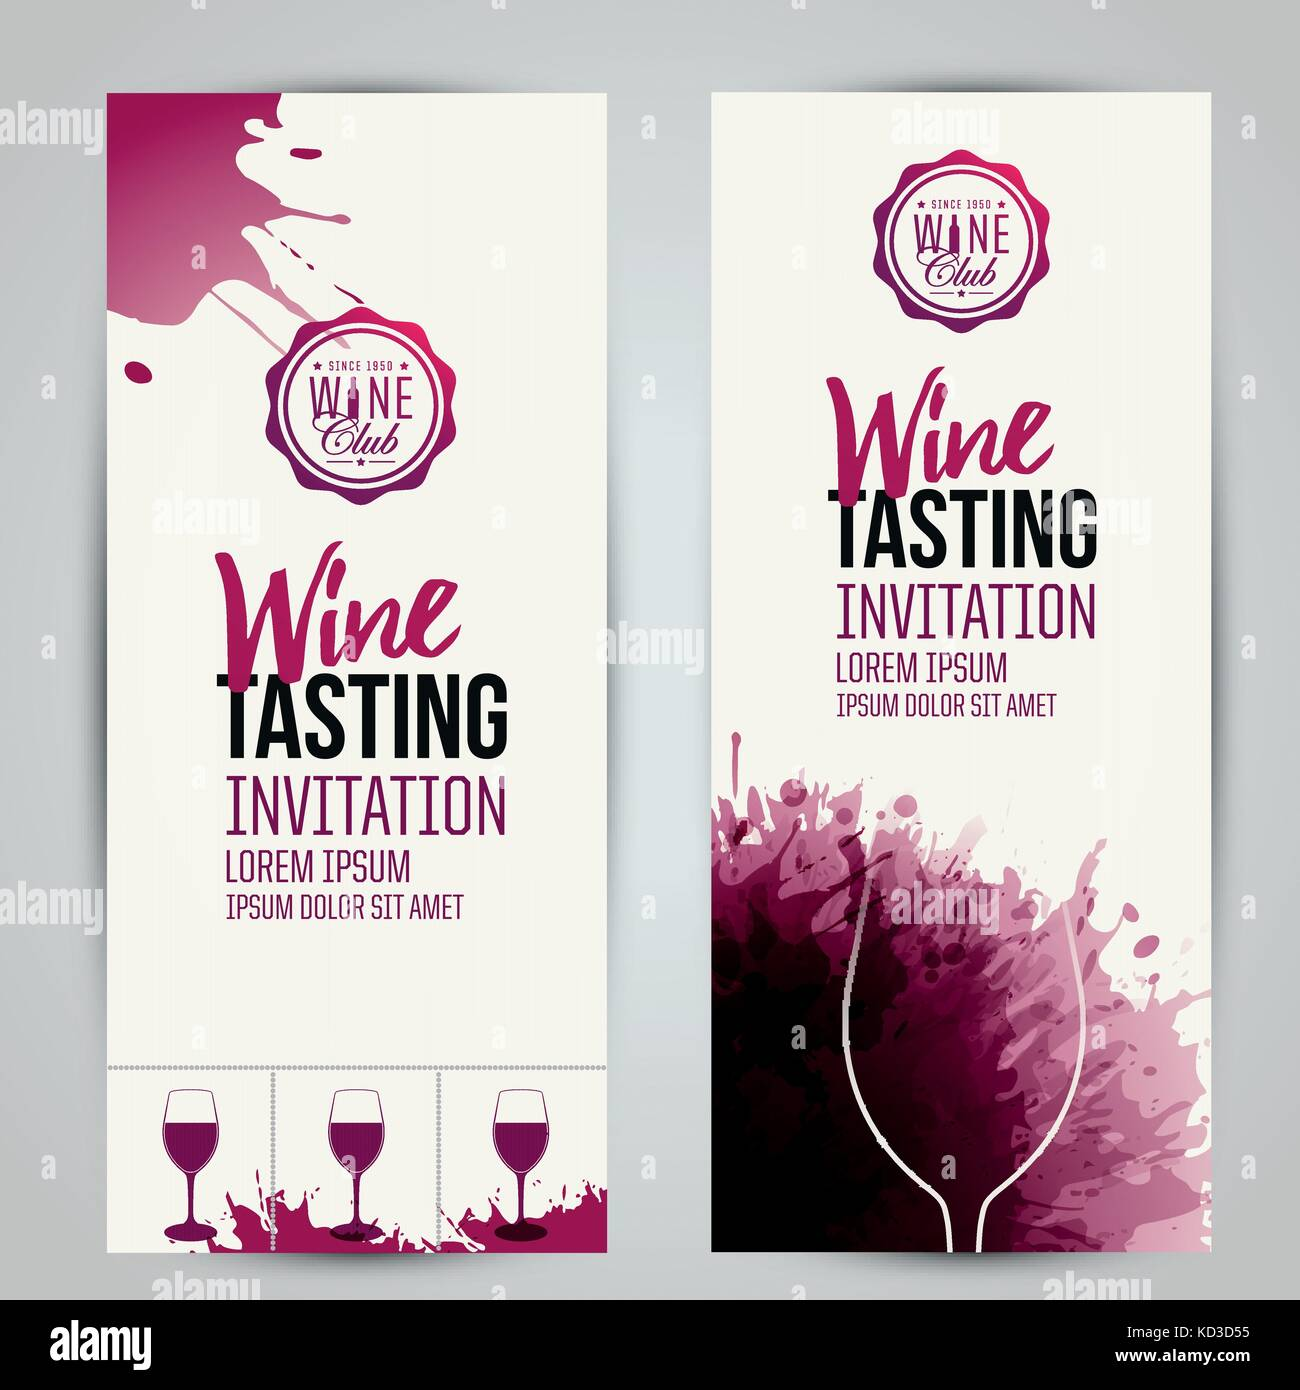 Design Of Invitation Ticket Or Banner For Your Wine Events Stock Vector Image Art Alamy